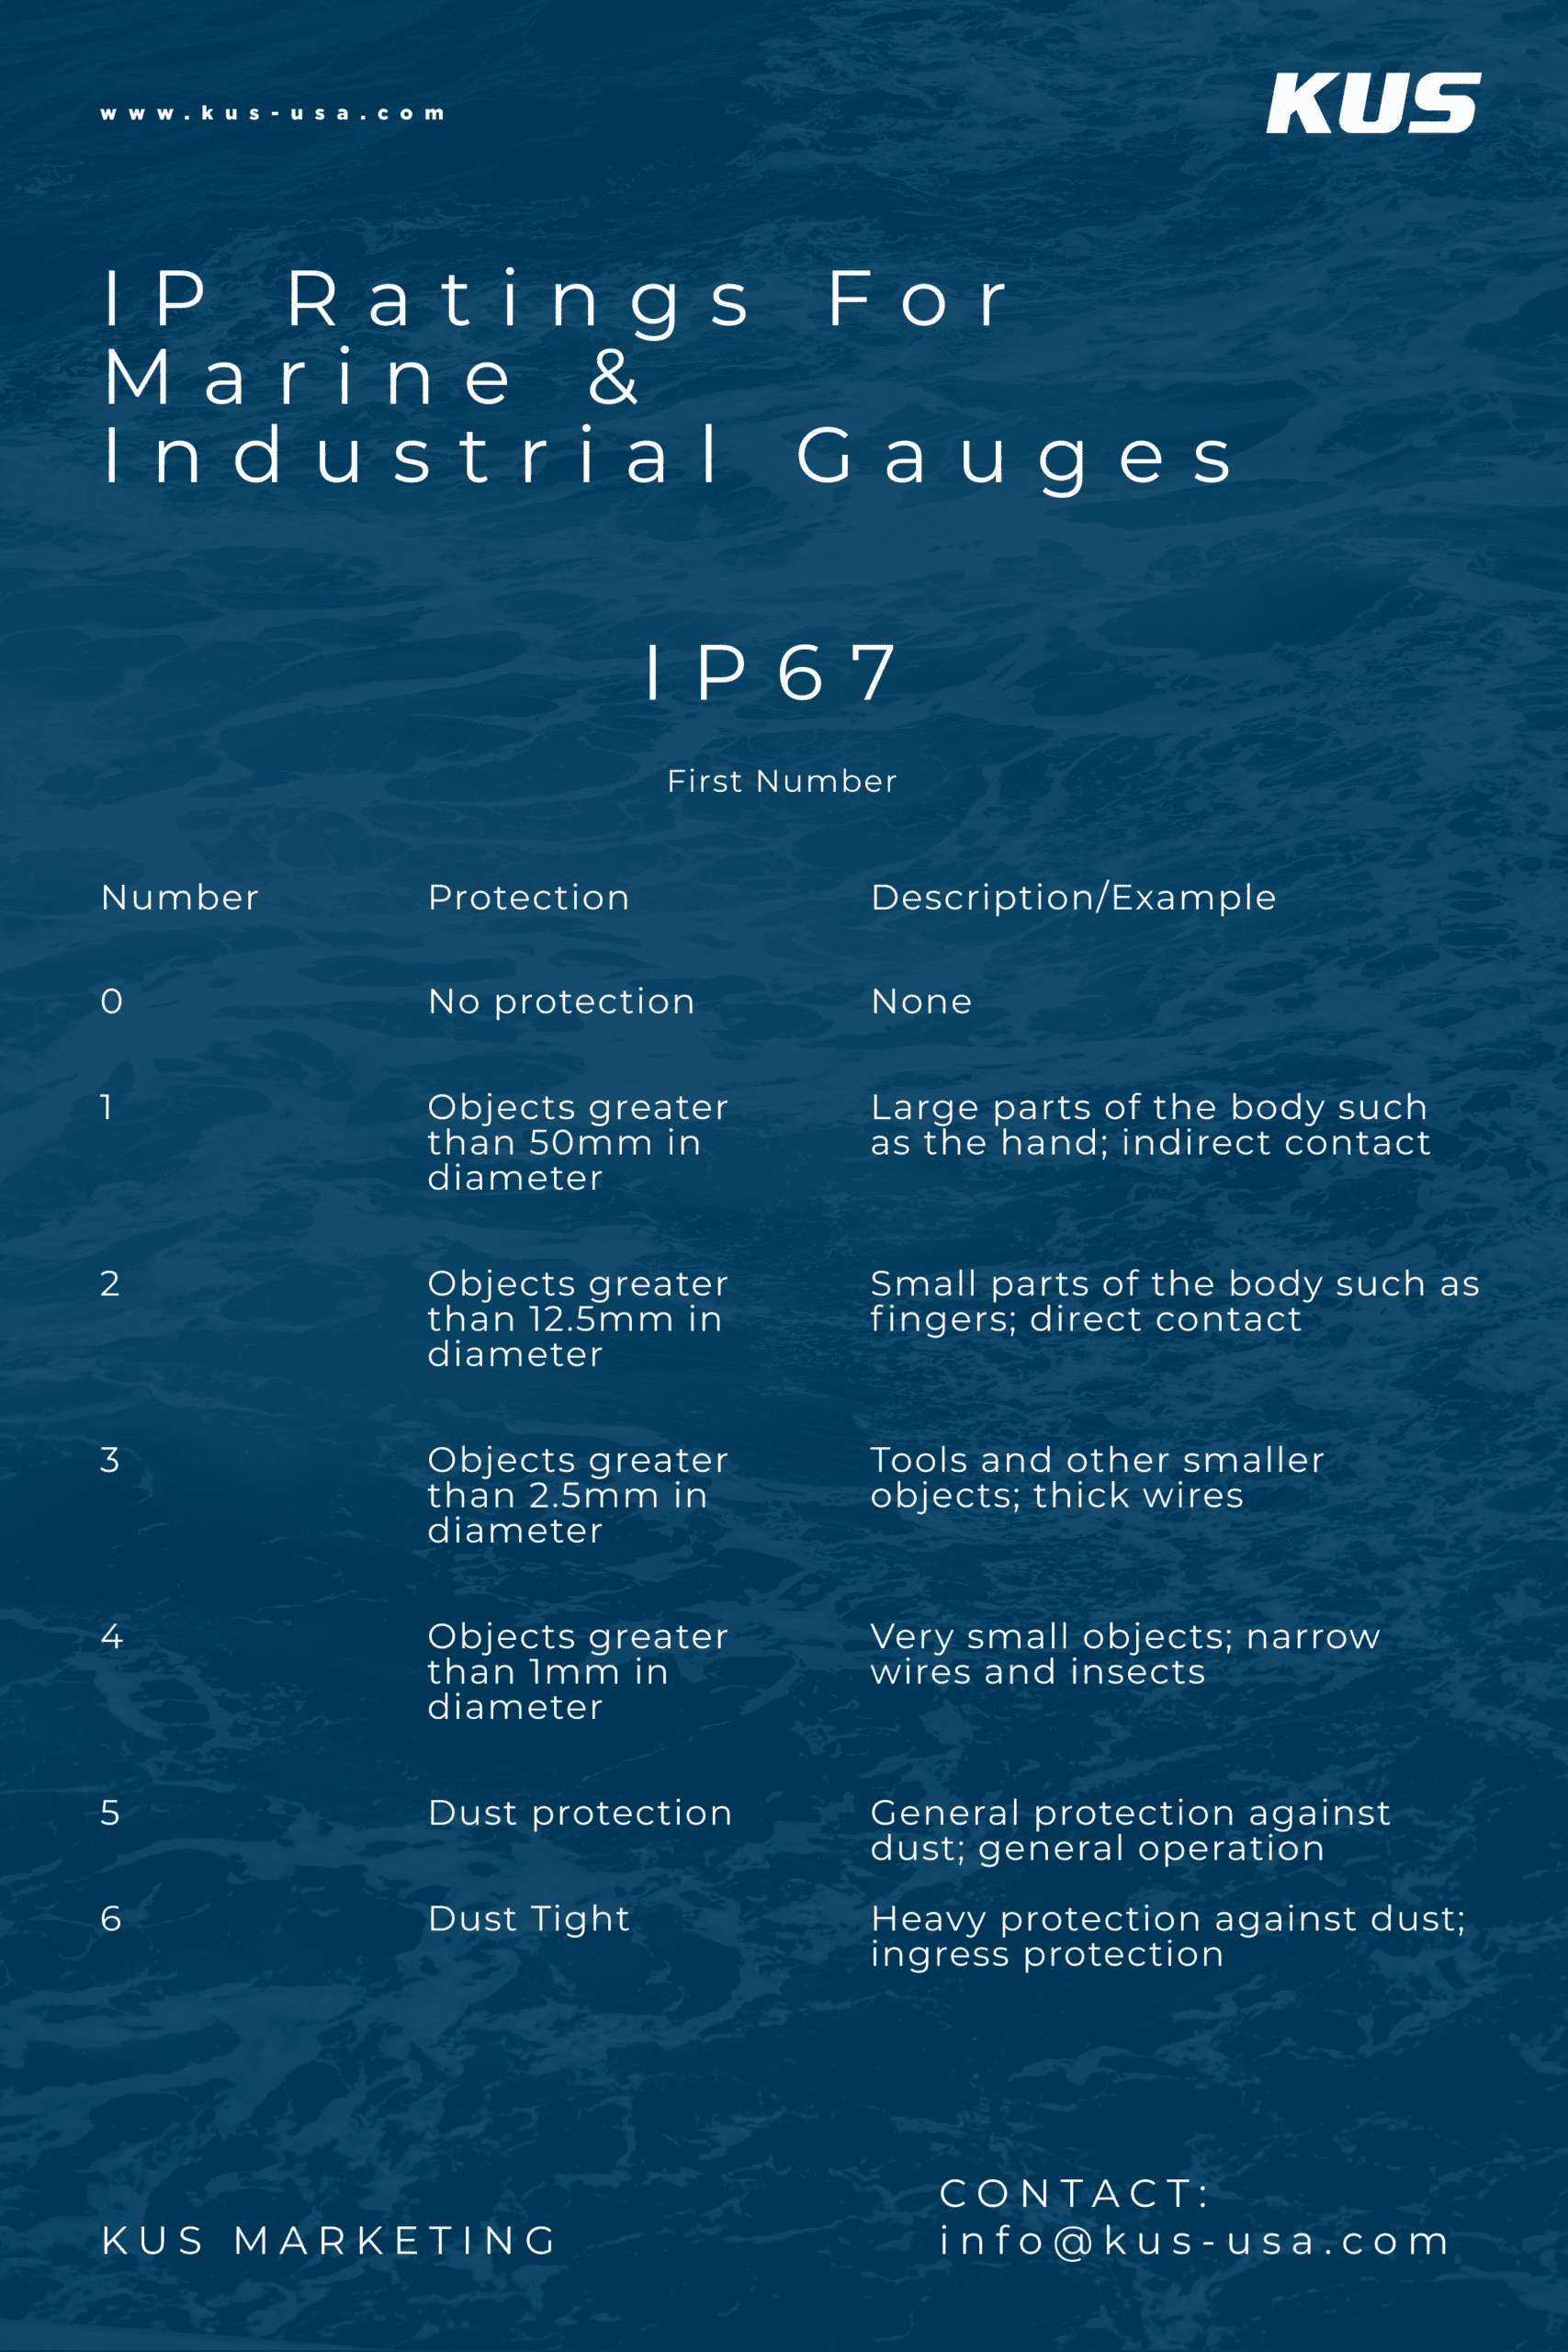 IP Ratings For Marine & Industrial Gauges (First Number(